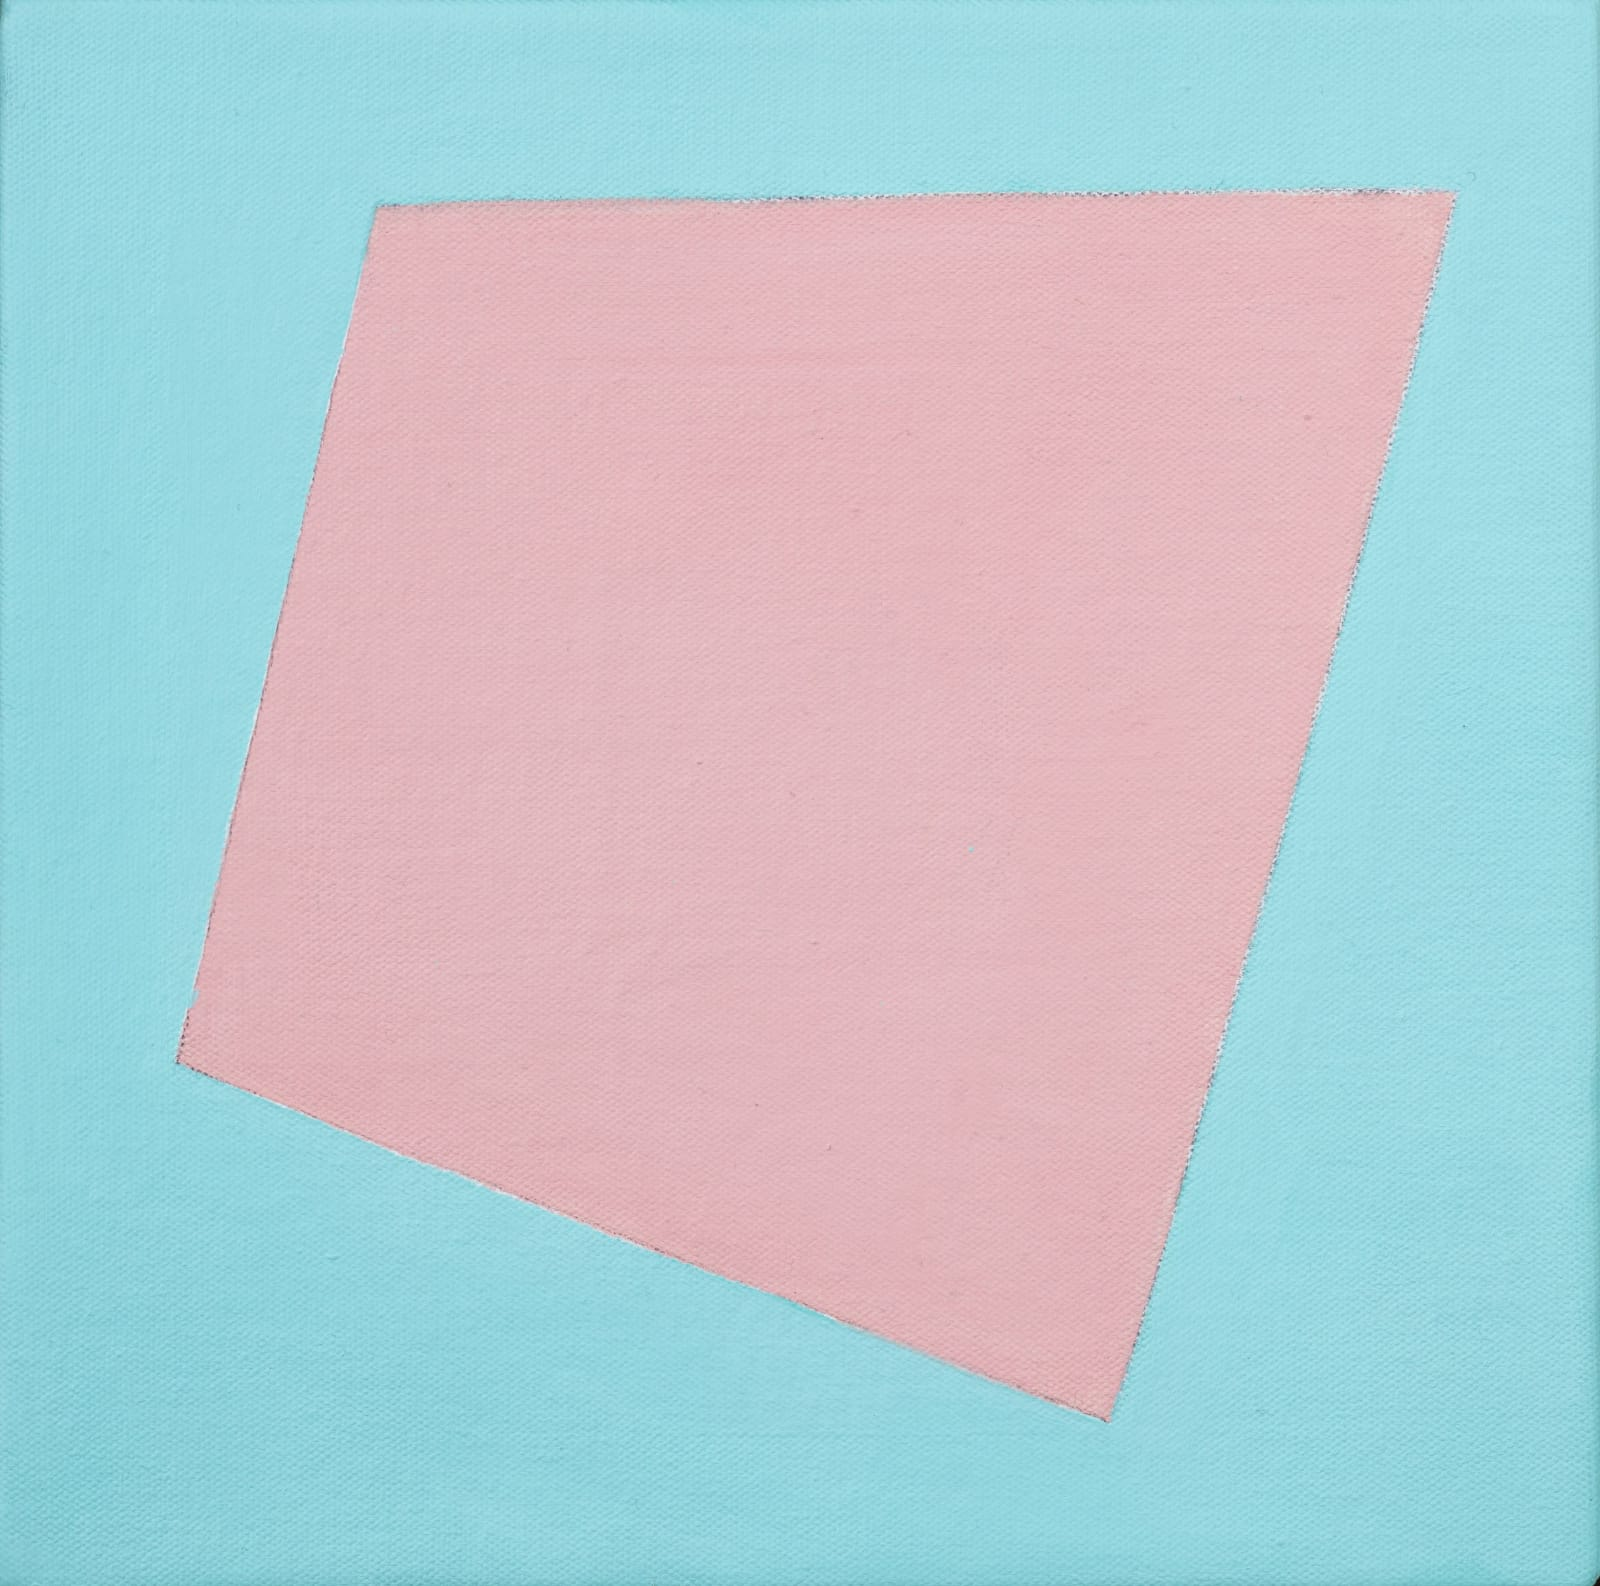 Julie Umerle, Unfolded Polygon III, 2019